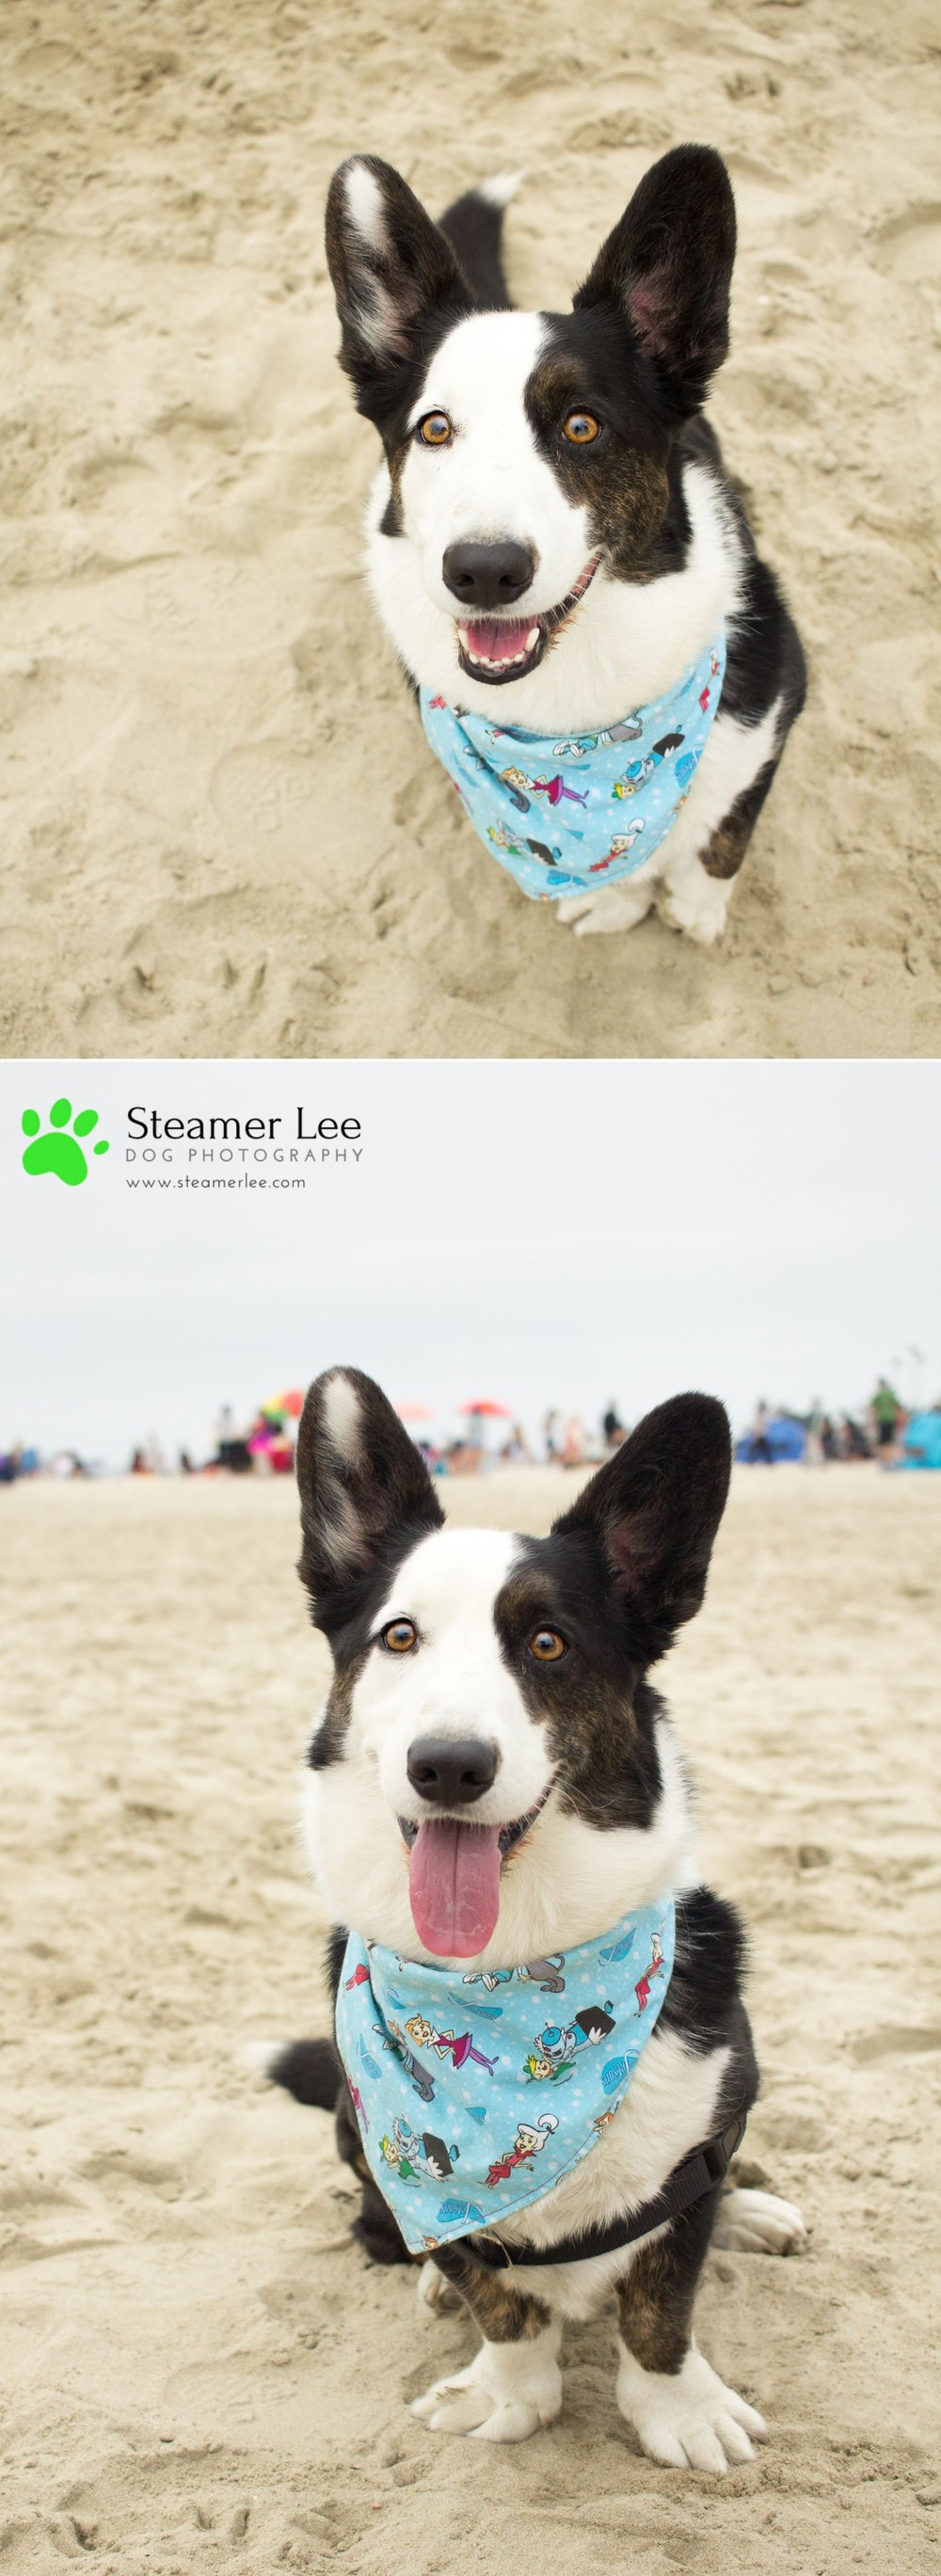 Steamer Lee Dog Photography - July 2017 So Cal Corgi Beach Day - Vol.2 - 1.jpg